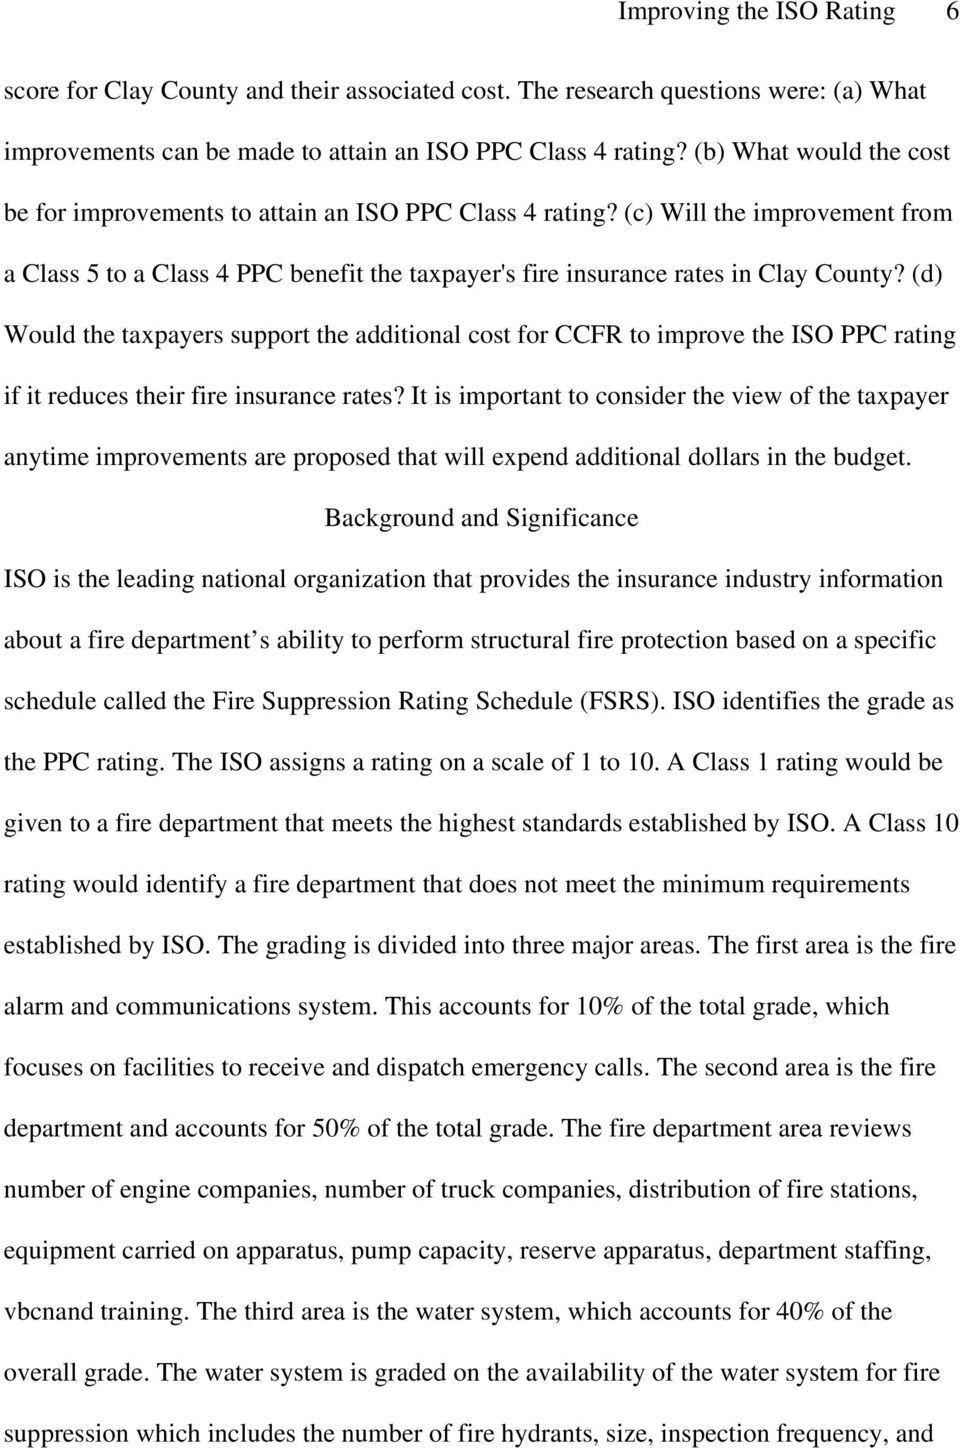 (d) Would the taxpayers support the additional cost for CCFR to improve the ISO PPC rating if it reduces their fire insurance rates?